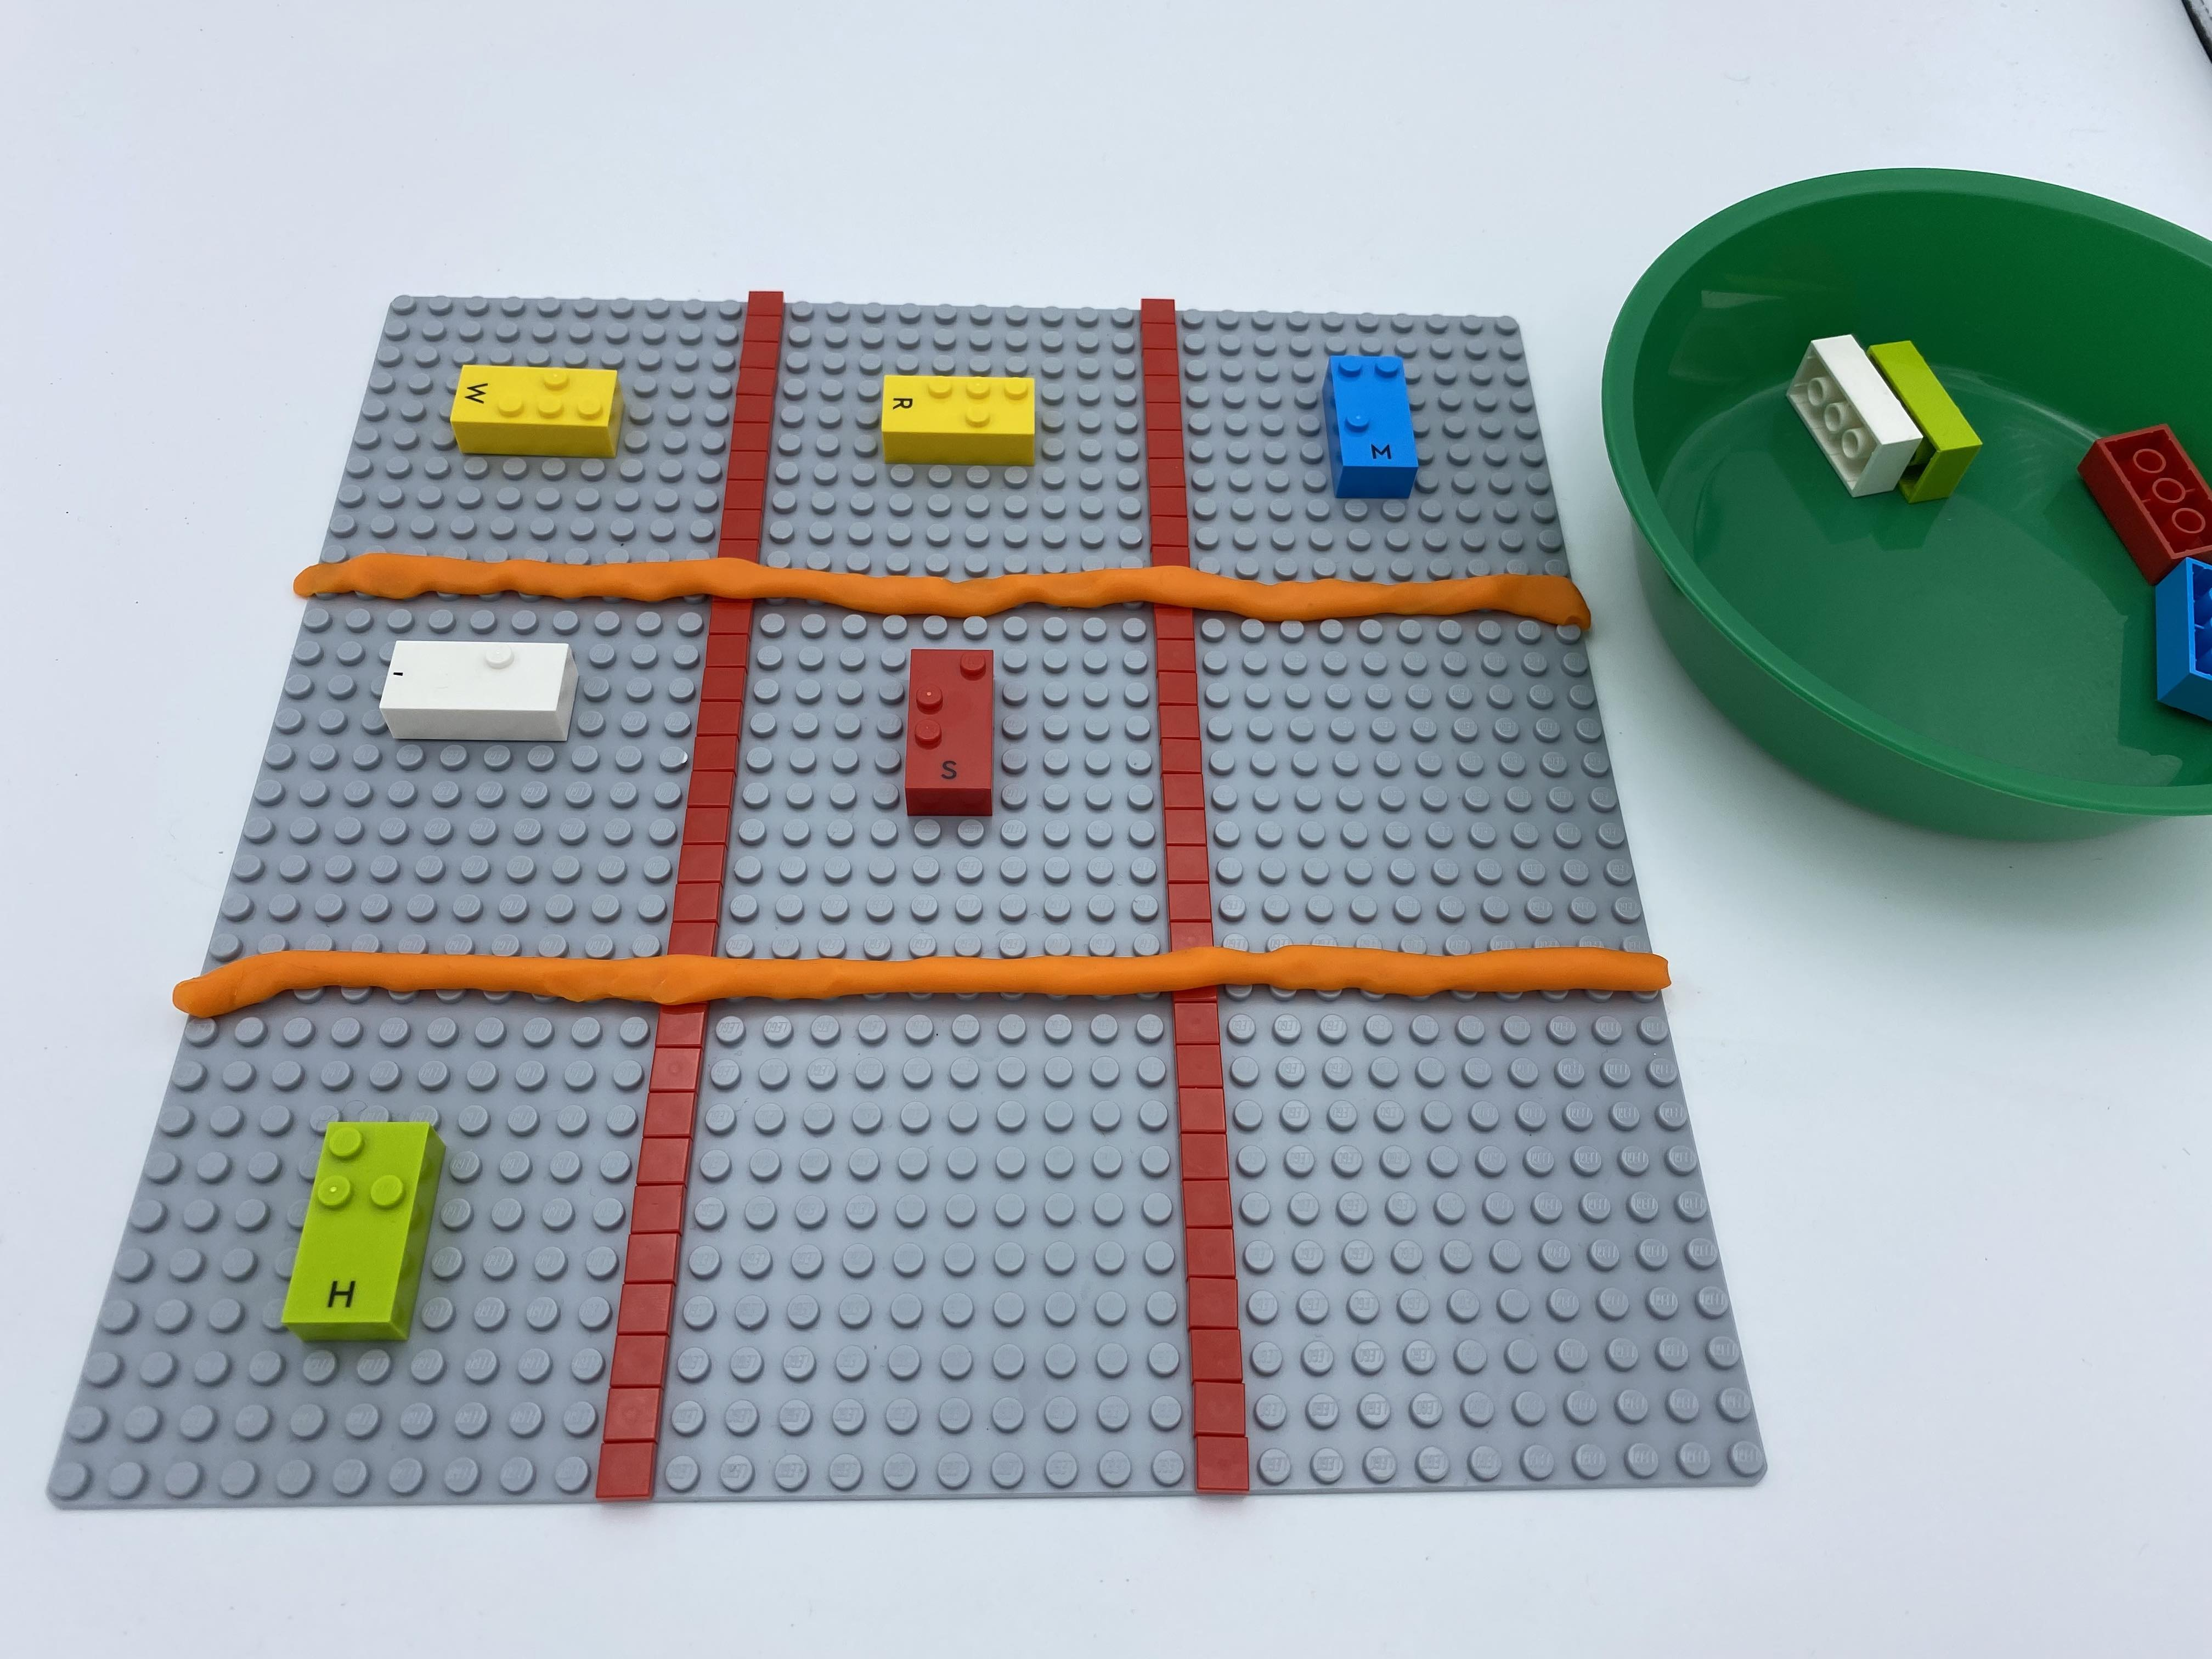 9 squares on a base plate. 3 vertical bricks are aligned, in diagonal.